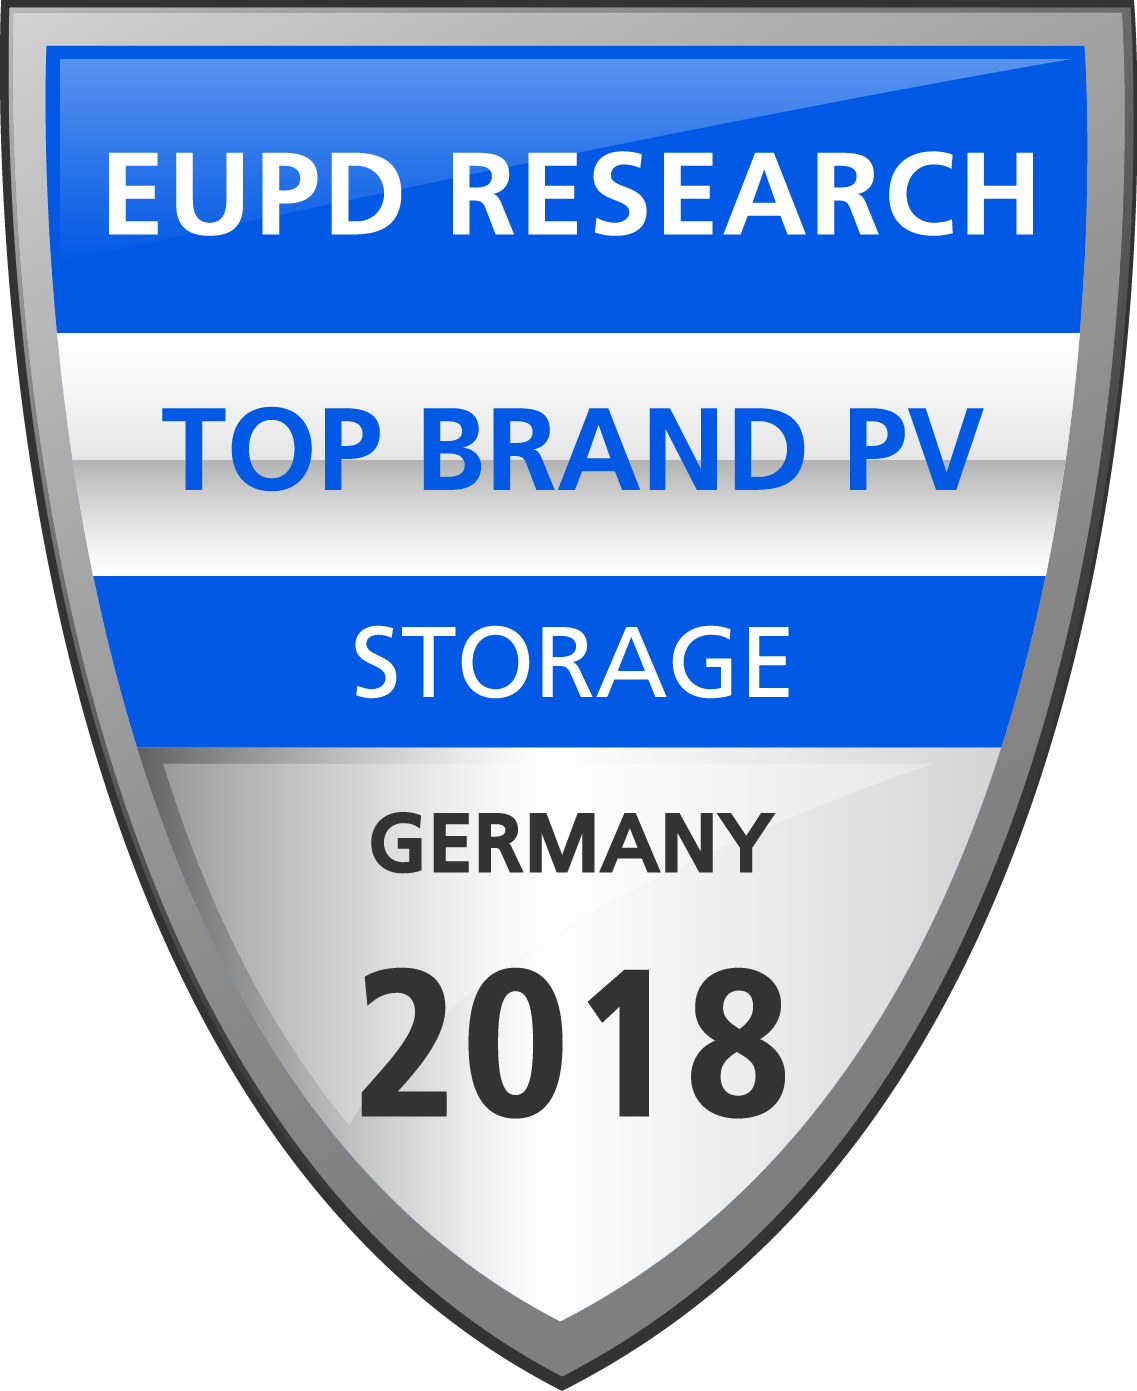 EuPR Top Band PV Storage 2018 for BYD